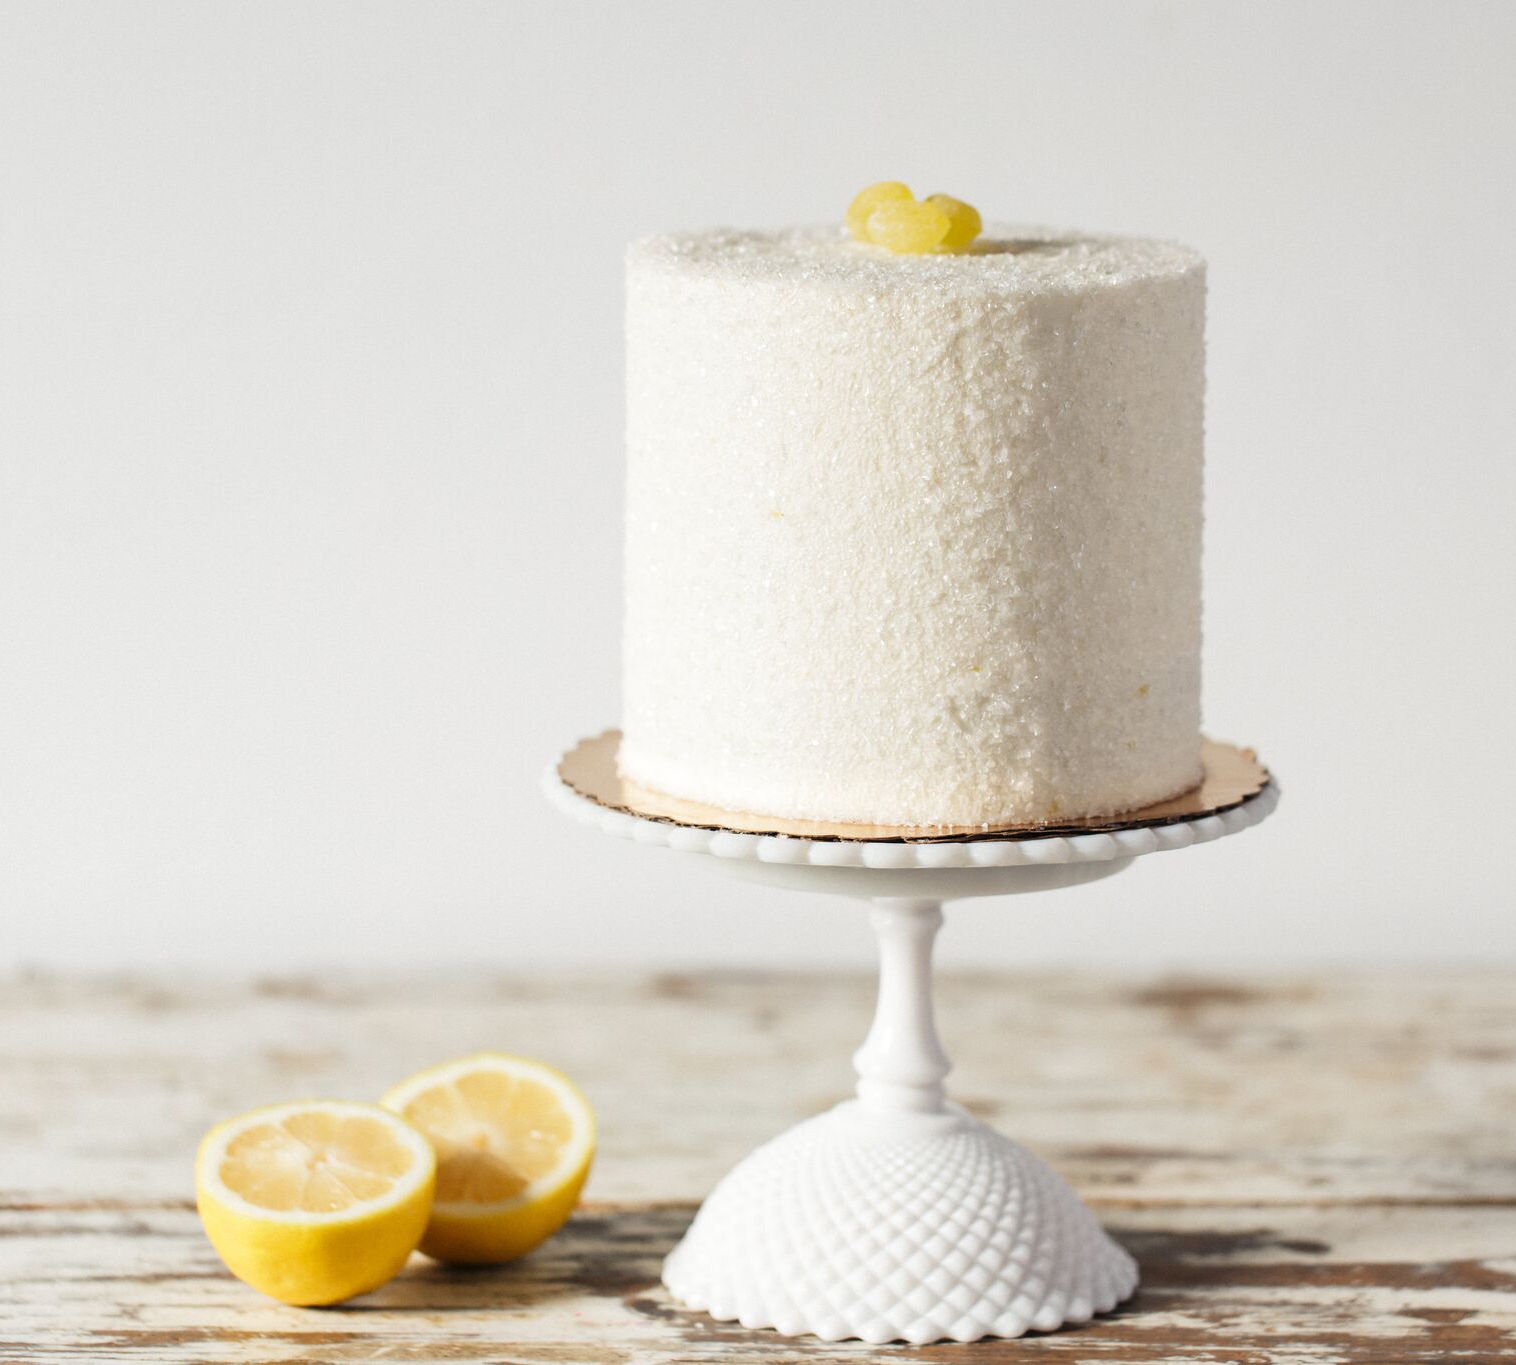 Lemon Love: - Three layers of Lemon Cake, Lemon Cream, Lemon Cream Cheese Frosting, Lemon Swiss Meringue Buttercream